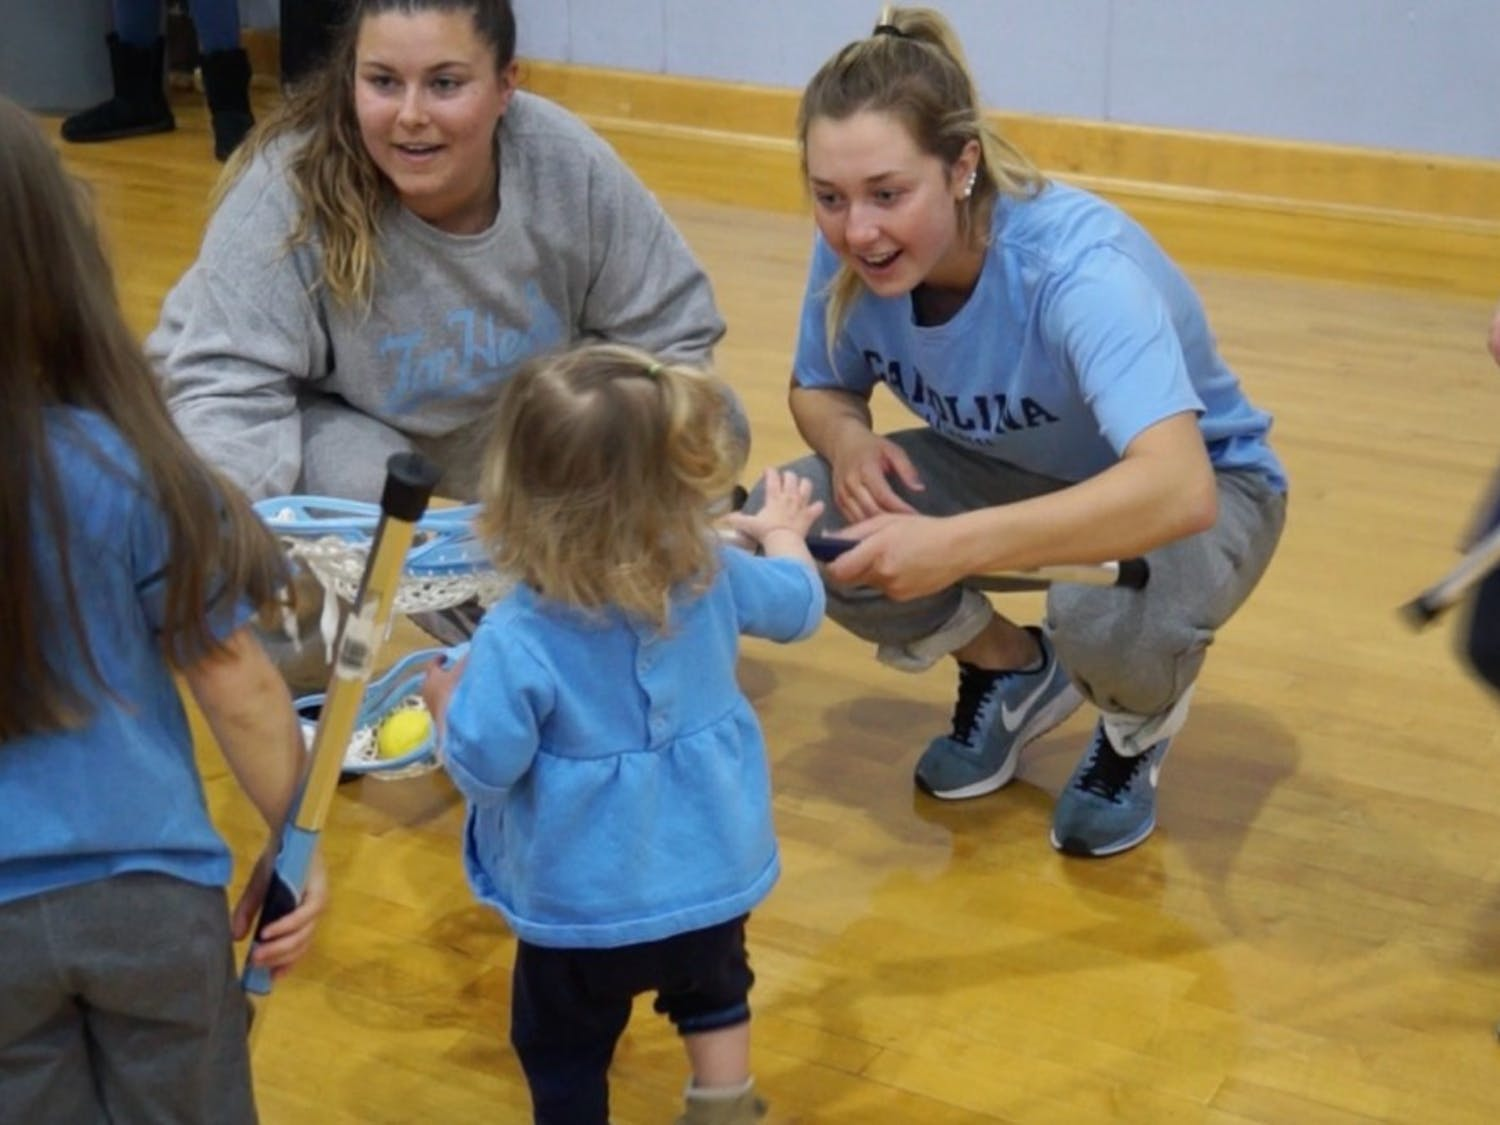 Jamie Ortega (right) and Kate Kotowski of UNC Women's Lacrosse talk to a young participant during National Girls and Women in Sports Day, hosted at UNC.